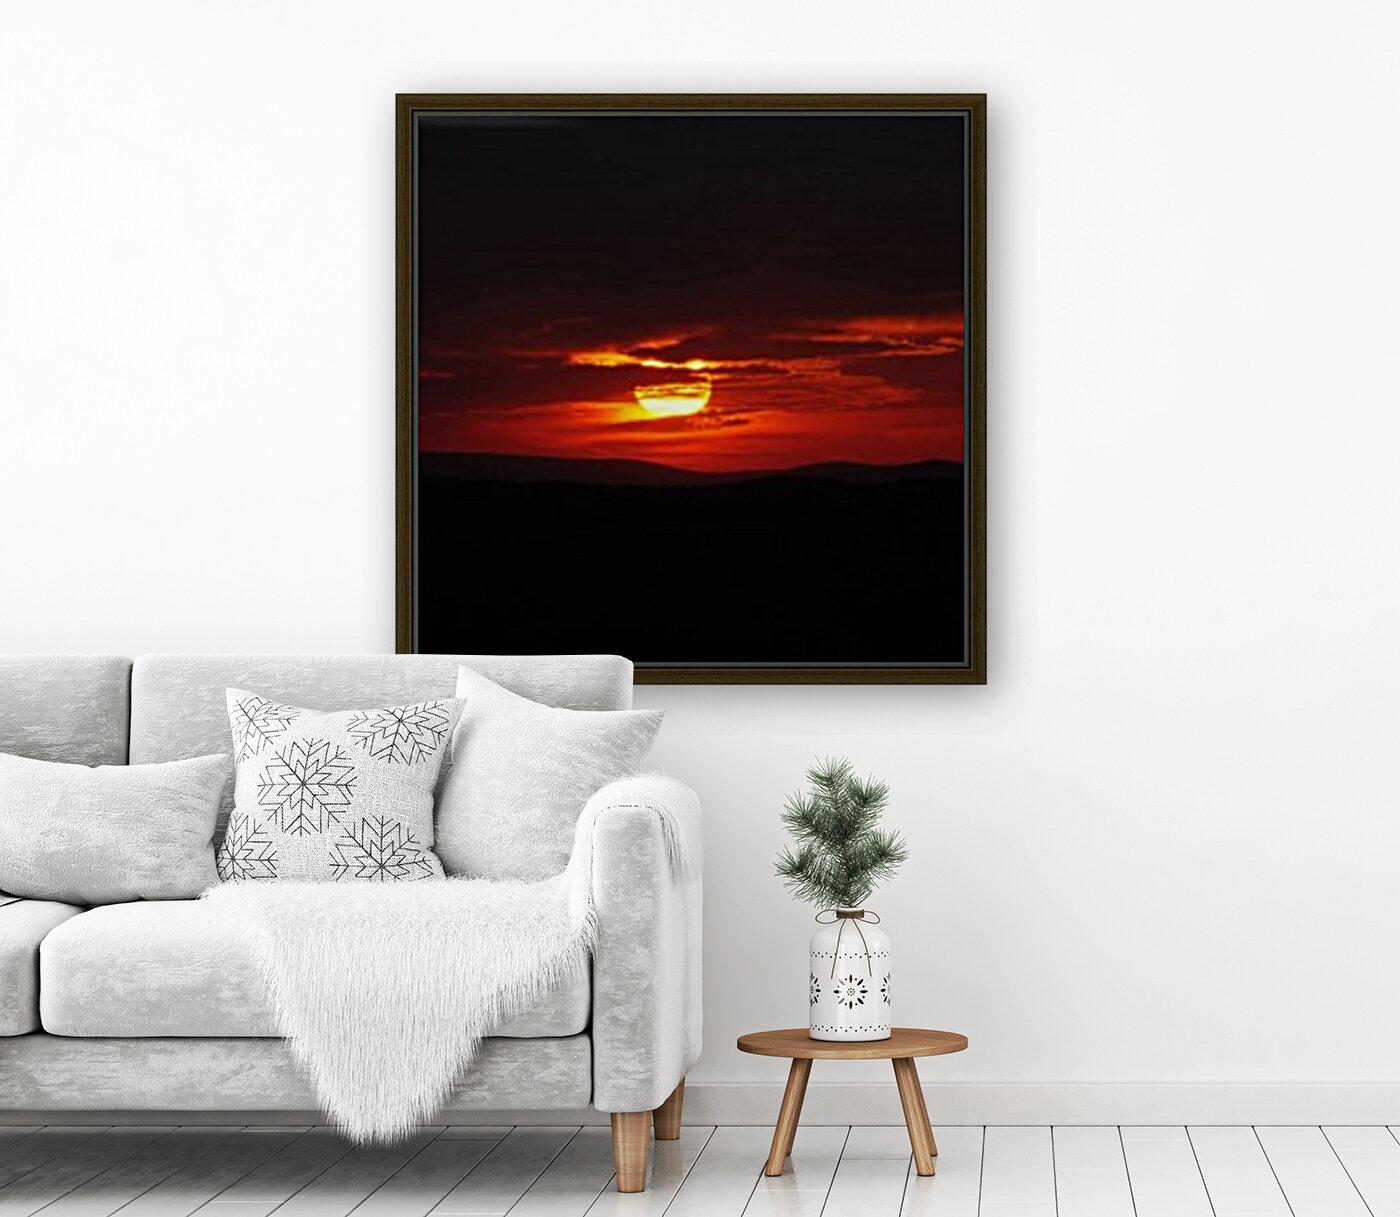 Sky on Fire with Floating Frame